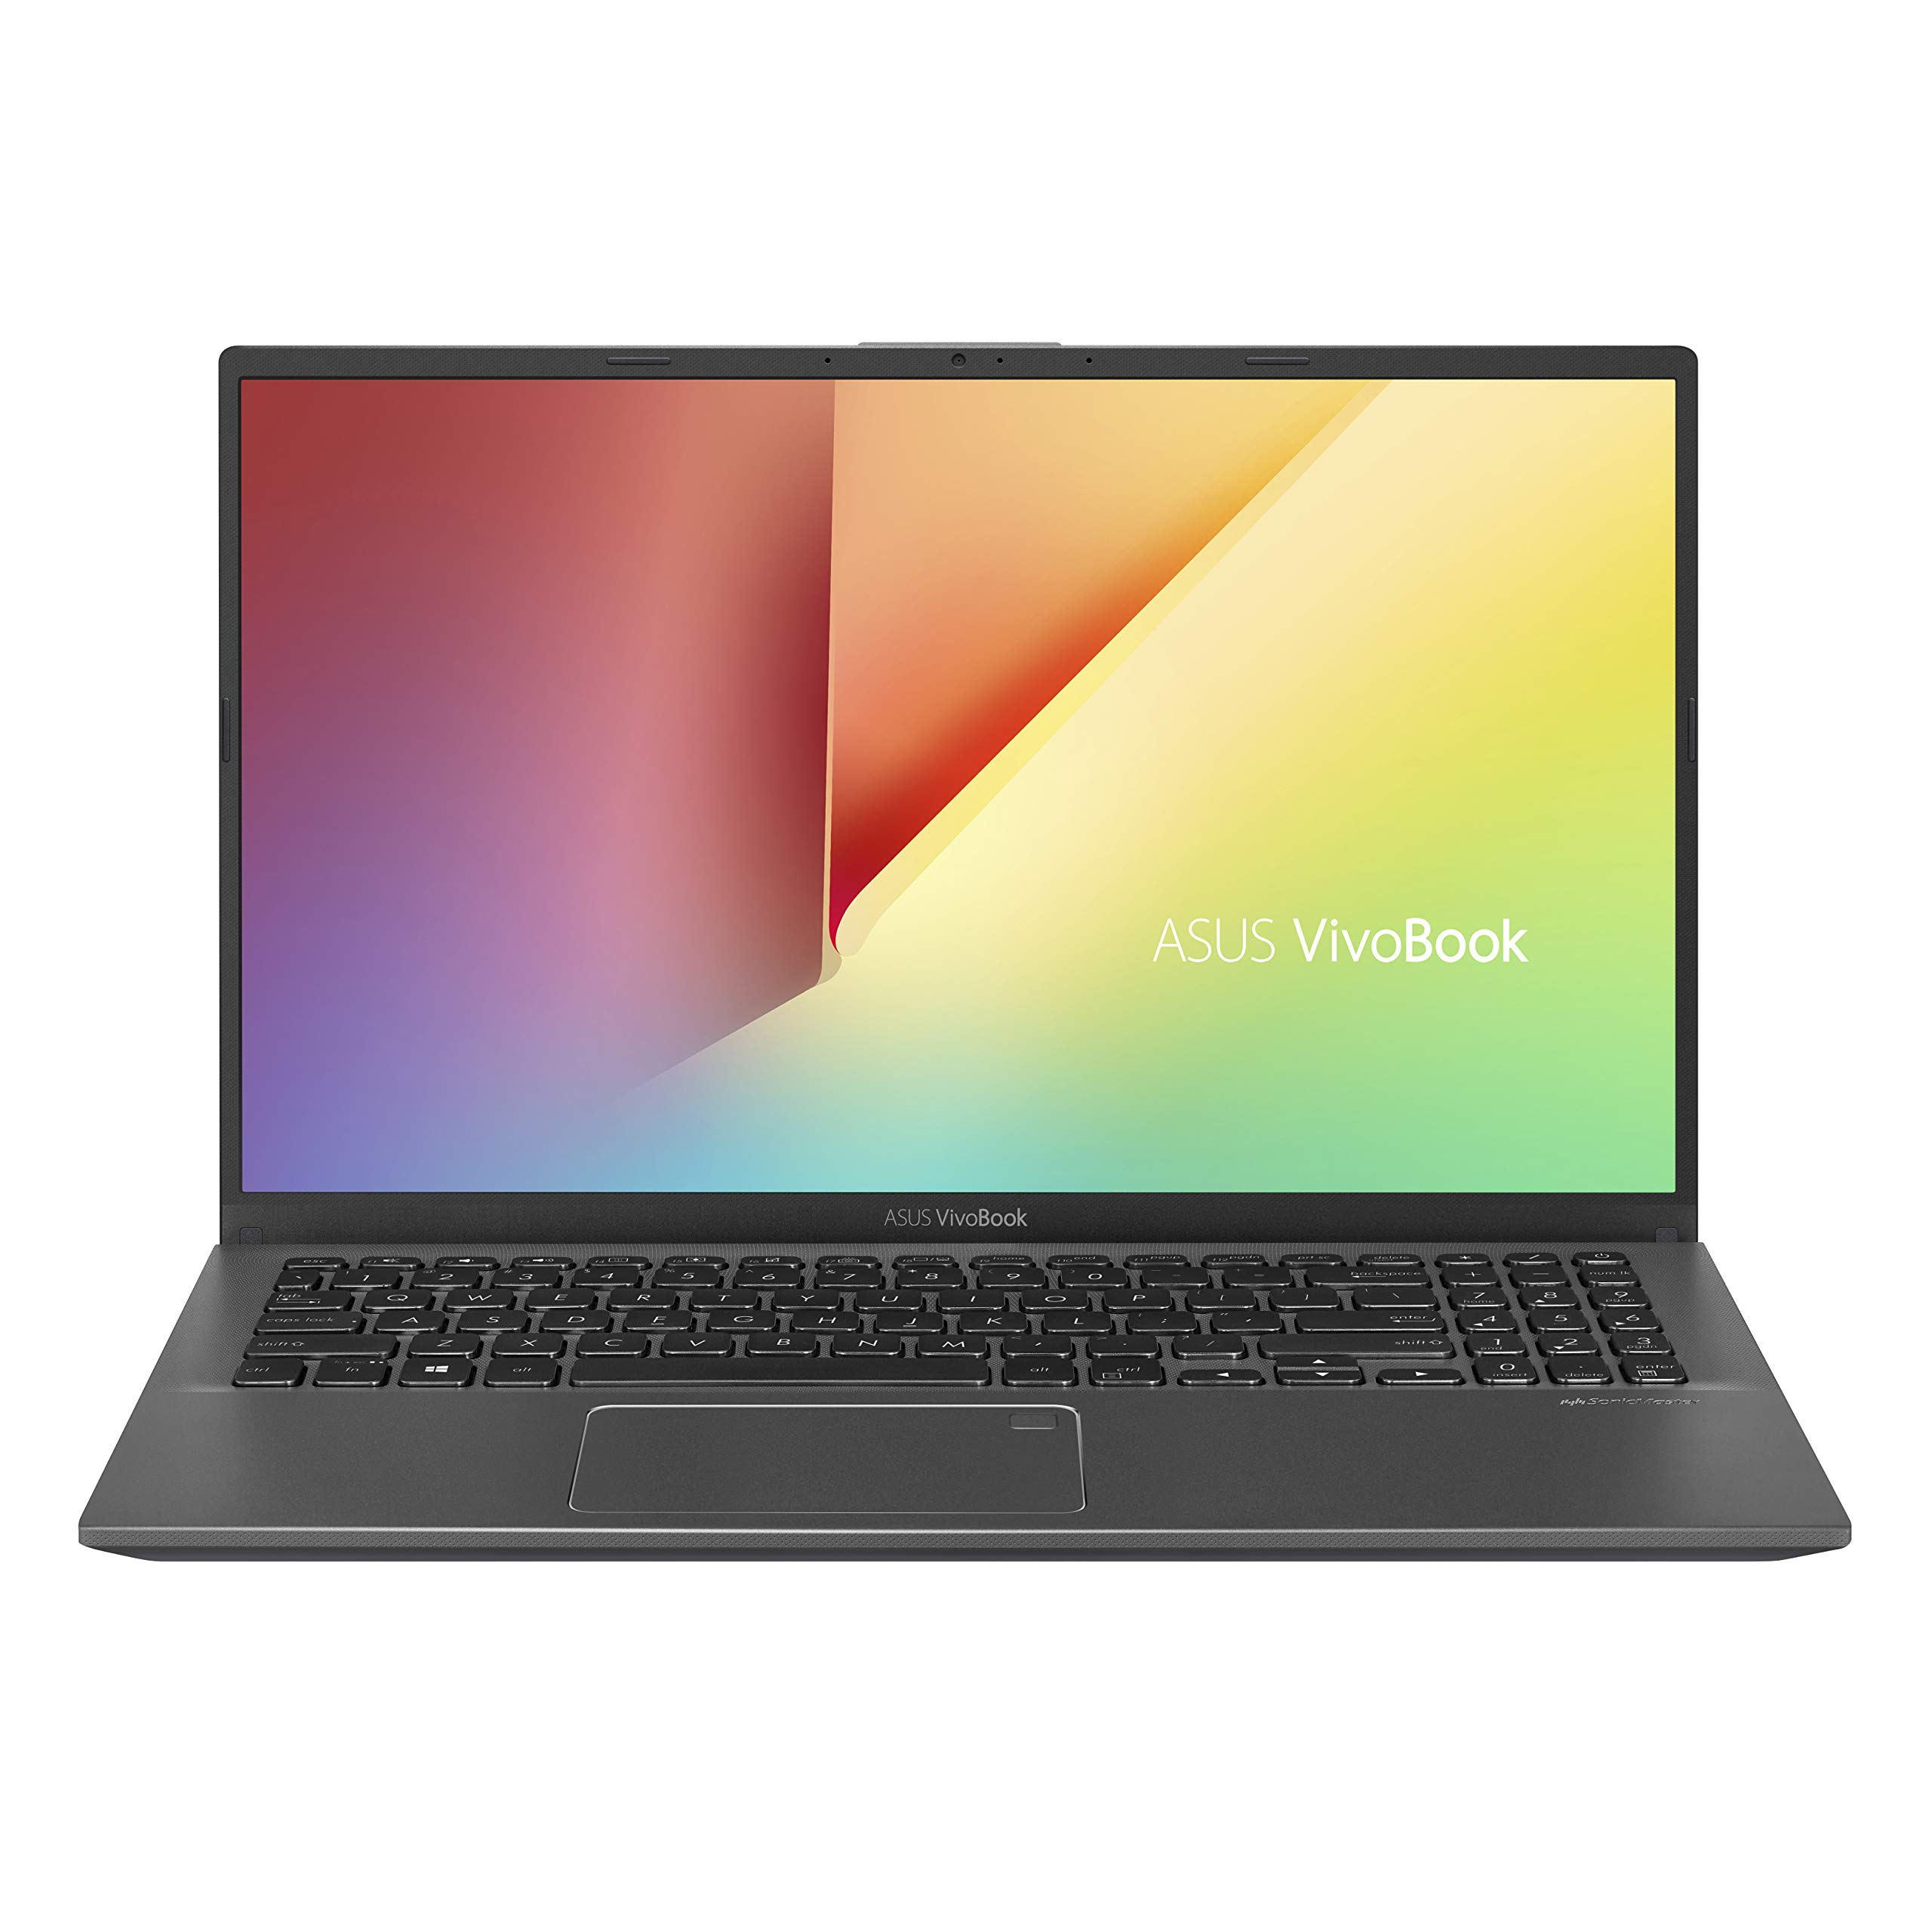 "ASUS VivoBook 15 Thin and Light Laptop, 15.6"" FHD Display, Intel i3-1005G1 CPU, 8GB RAM, 128GB SSD, Backlit Keyboard, Fingerprint, Windows 10 Home in S Mode, Slate Gray, F512JA-AS34"